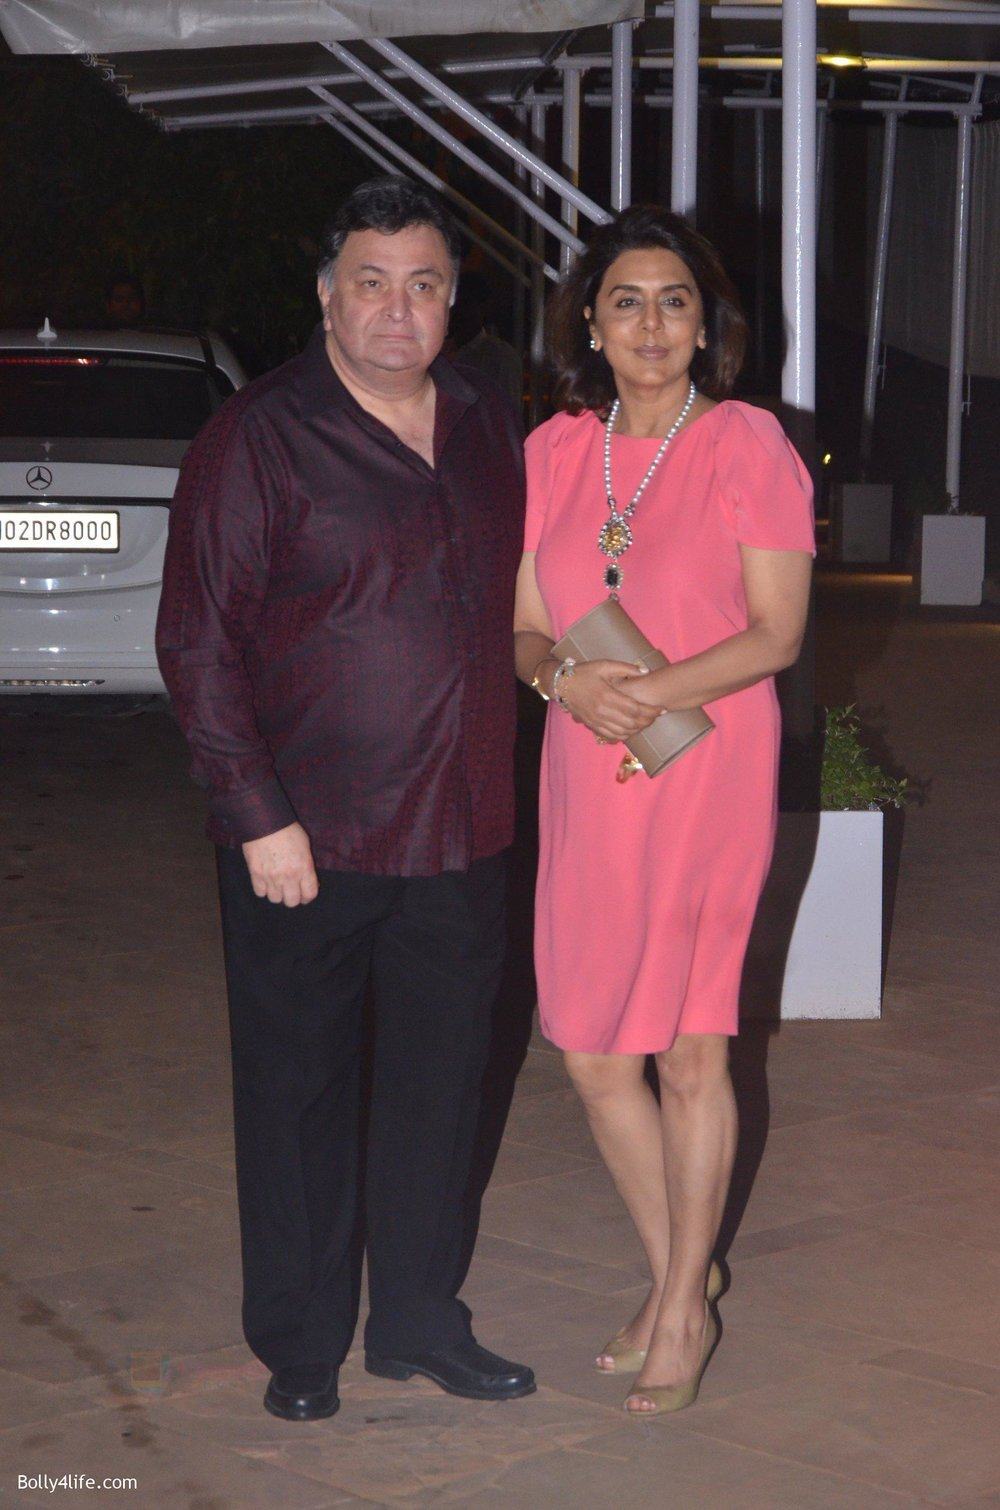 Rishi-Kapoor-Neetu-Singh-at-Reema-jain-bday-party-in-Amadeus-NCPA-on-28th-Sept-2016-772.jpg